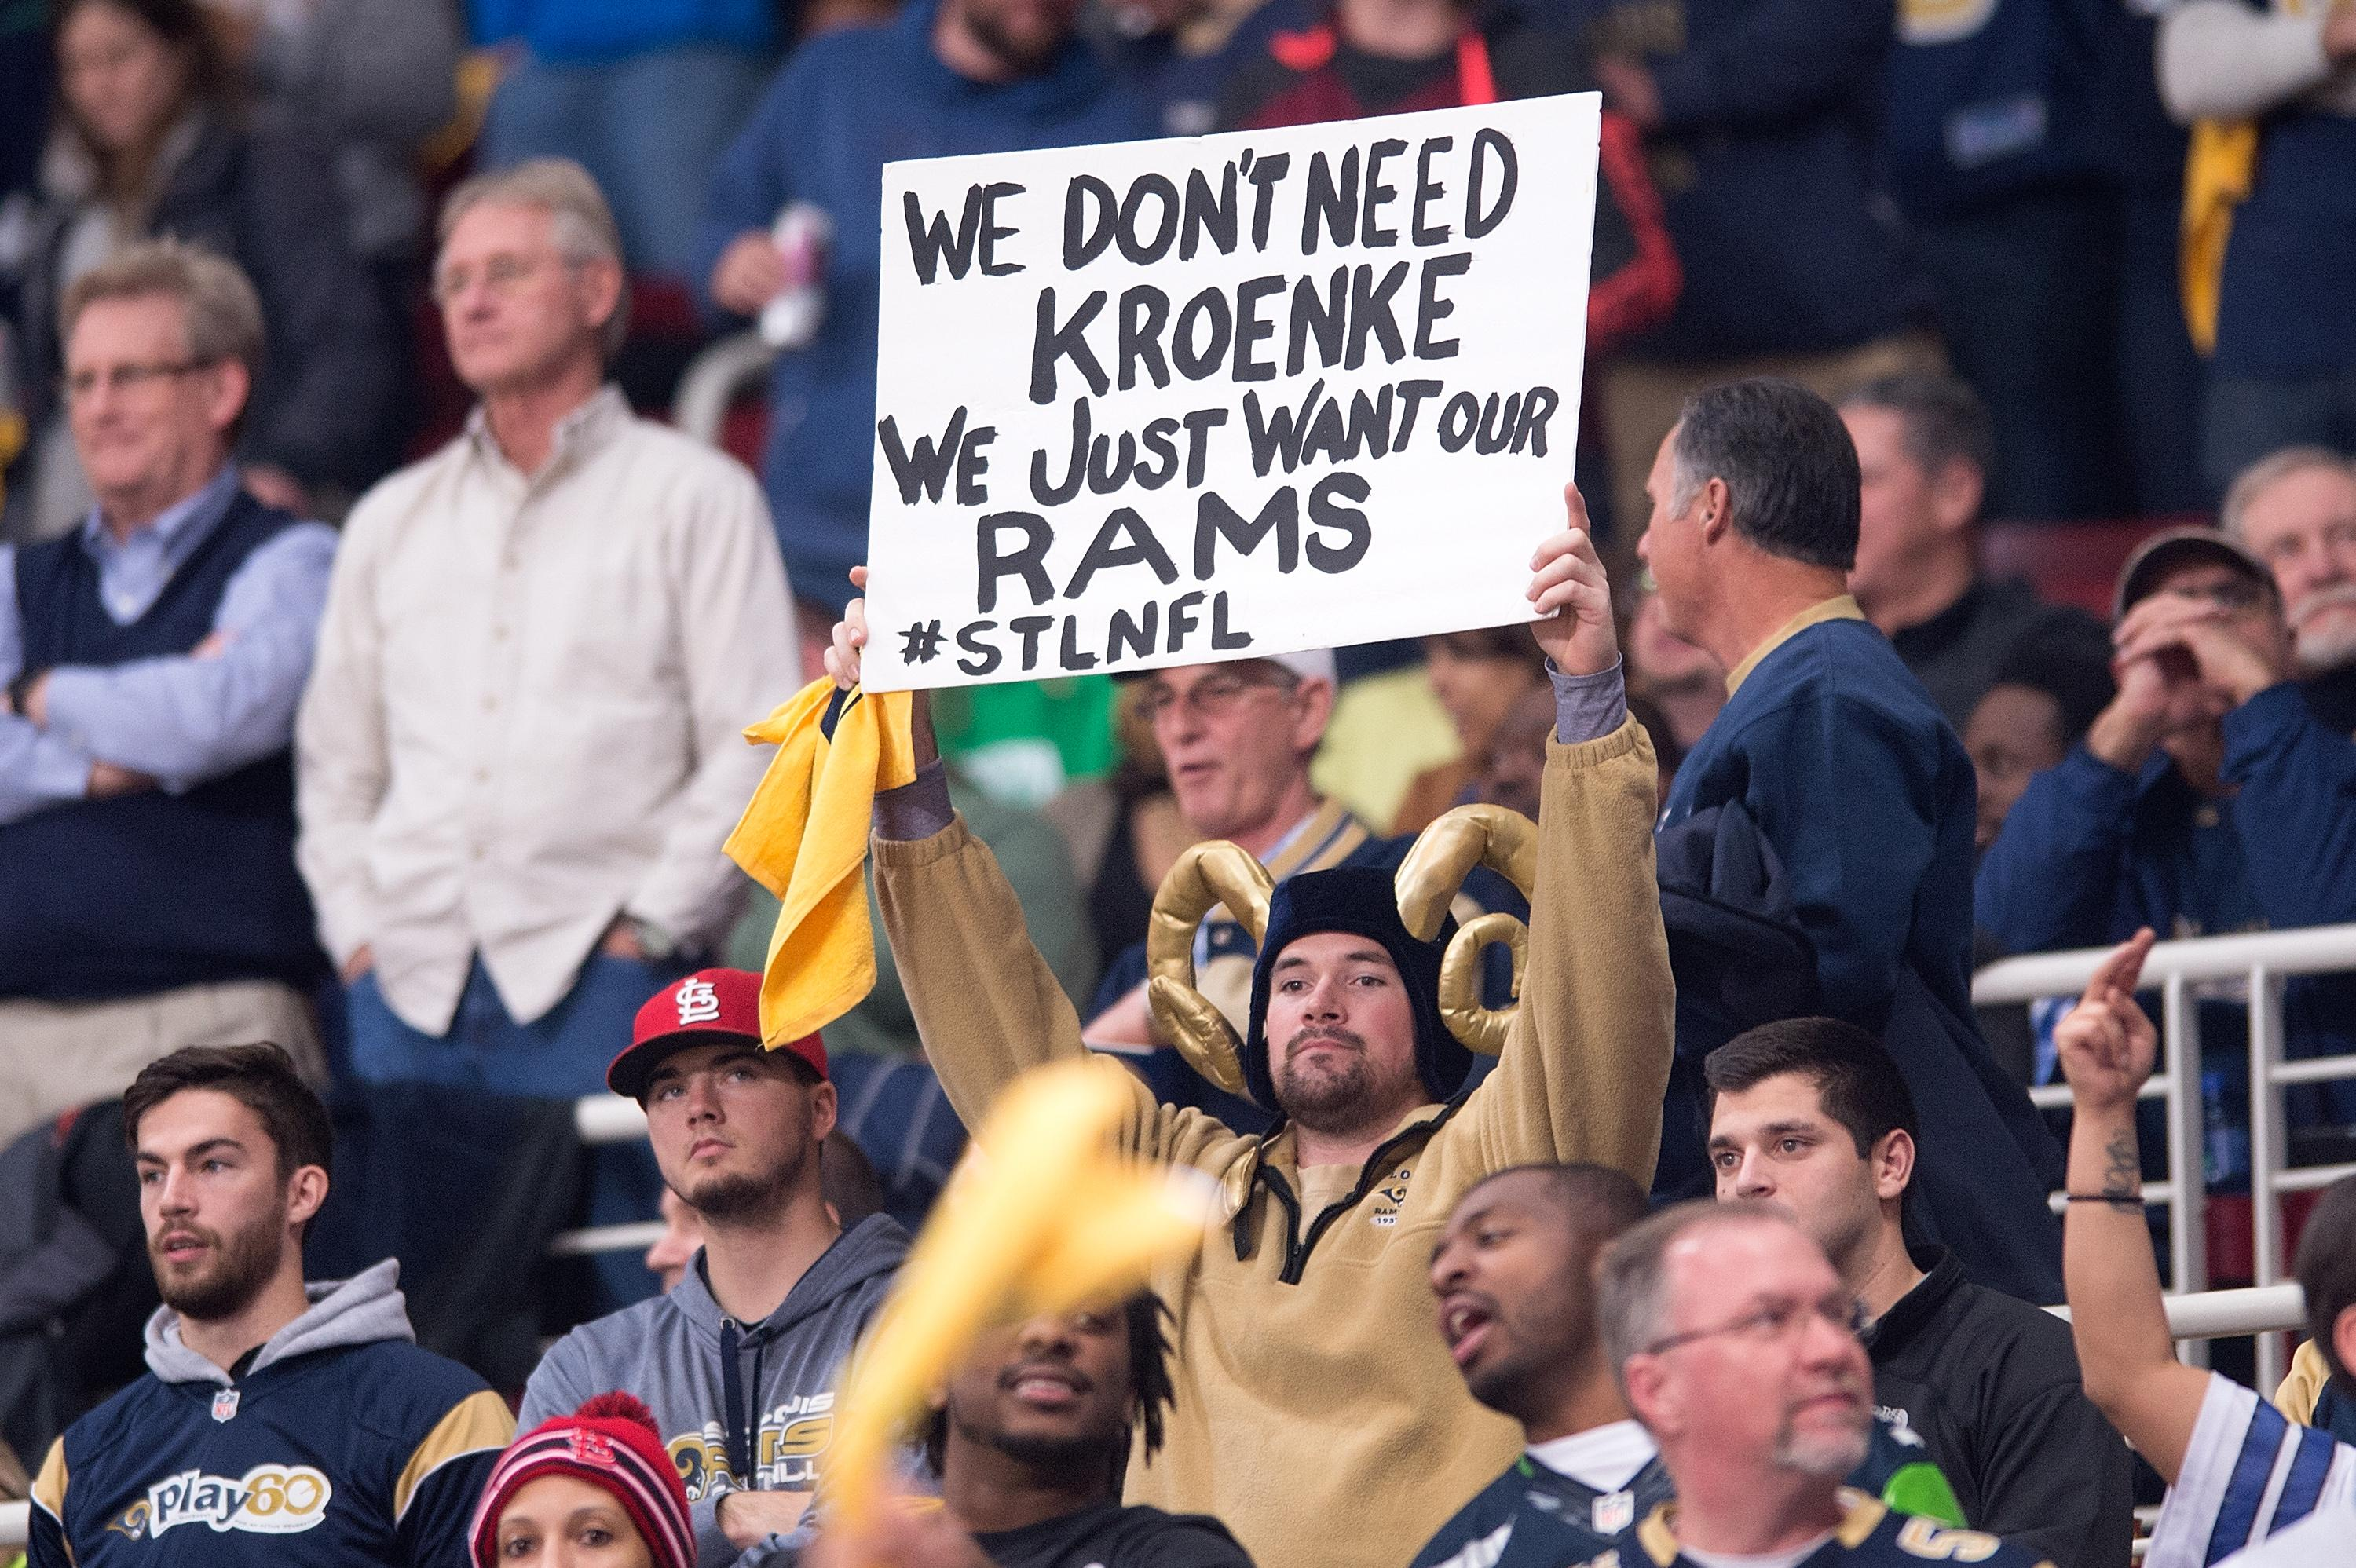 St Louis fans were left furious when the team was moved to Los Angeles